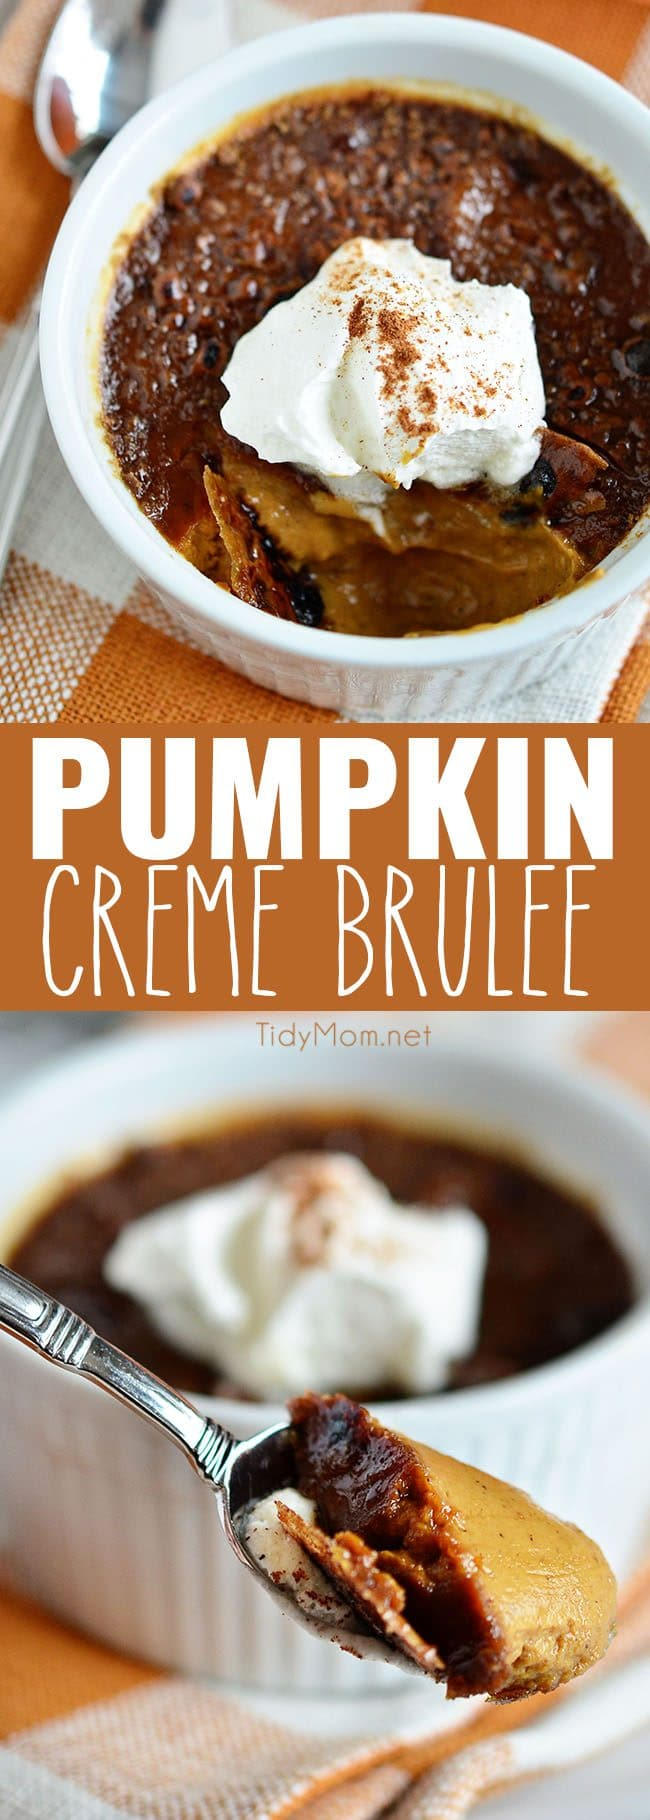 Pumpkin Crème Brûlée The secret ingredient that really sets this ...